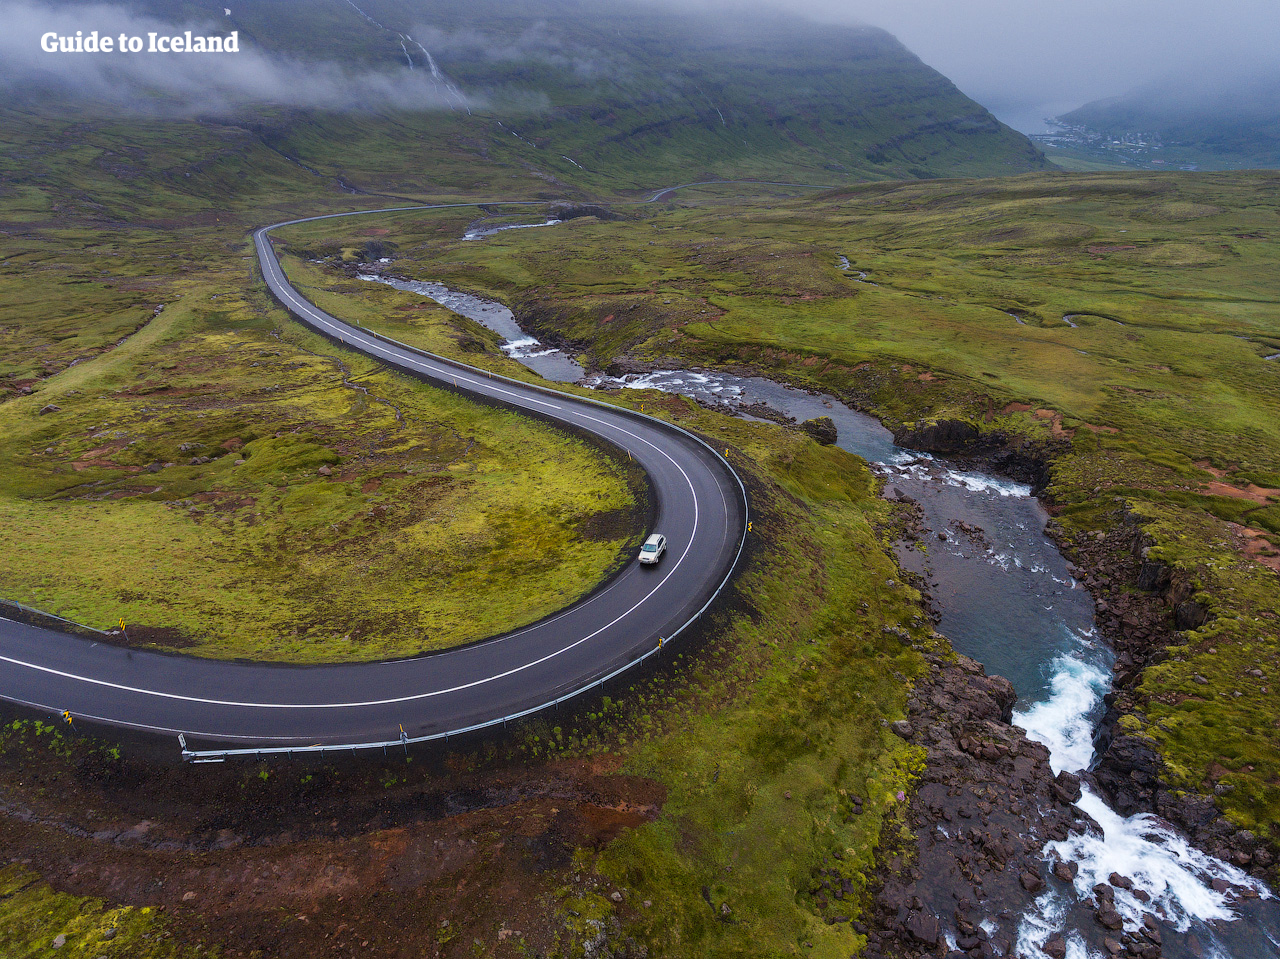 Car Rental Insurance In Iceland